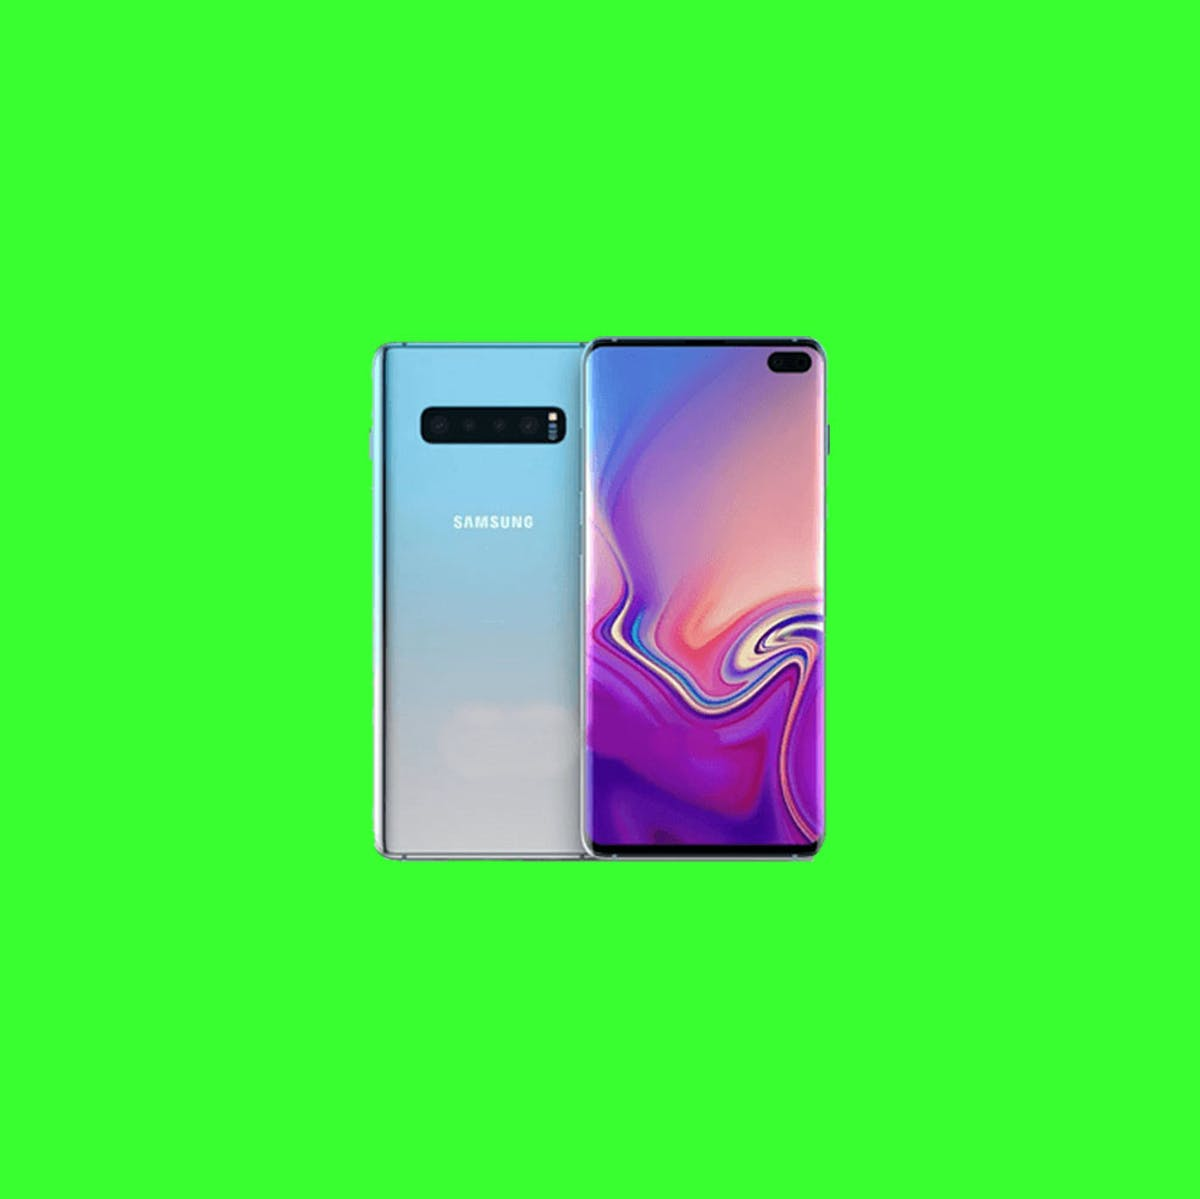 Prime Day 2019: 3 Powerful Android Smartphones Seeing Massive Price Cuts